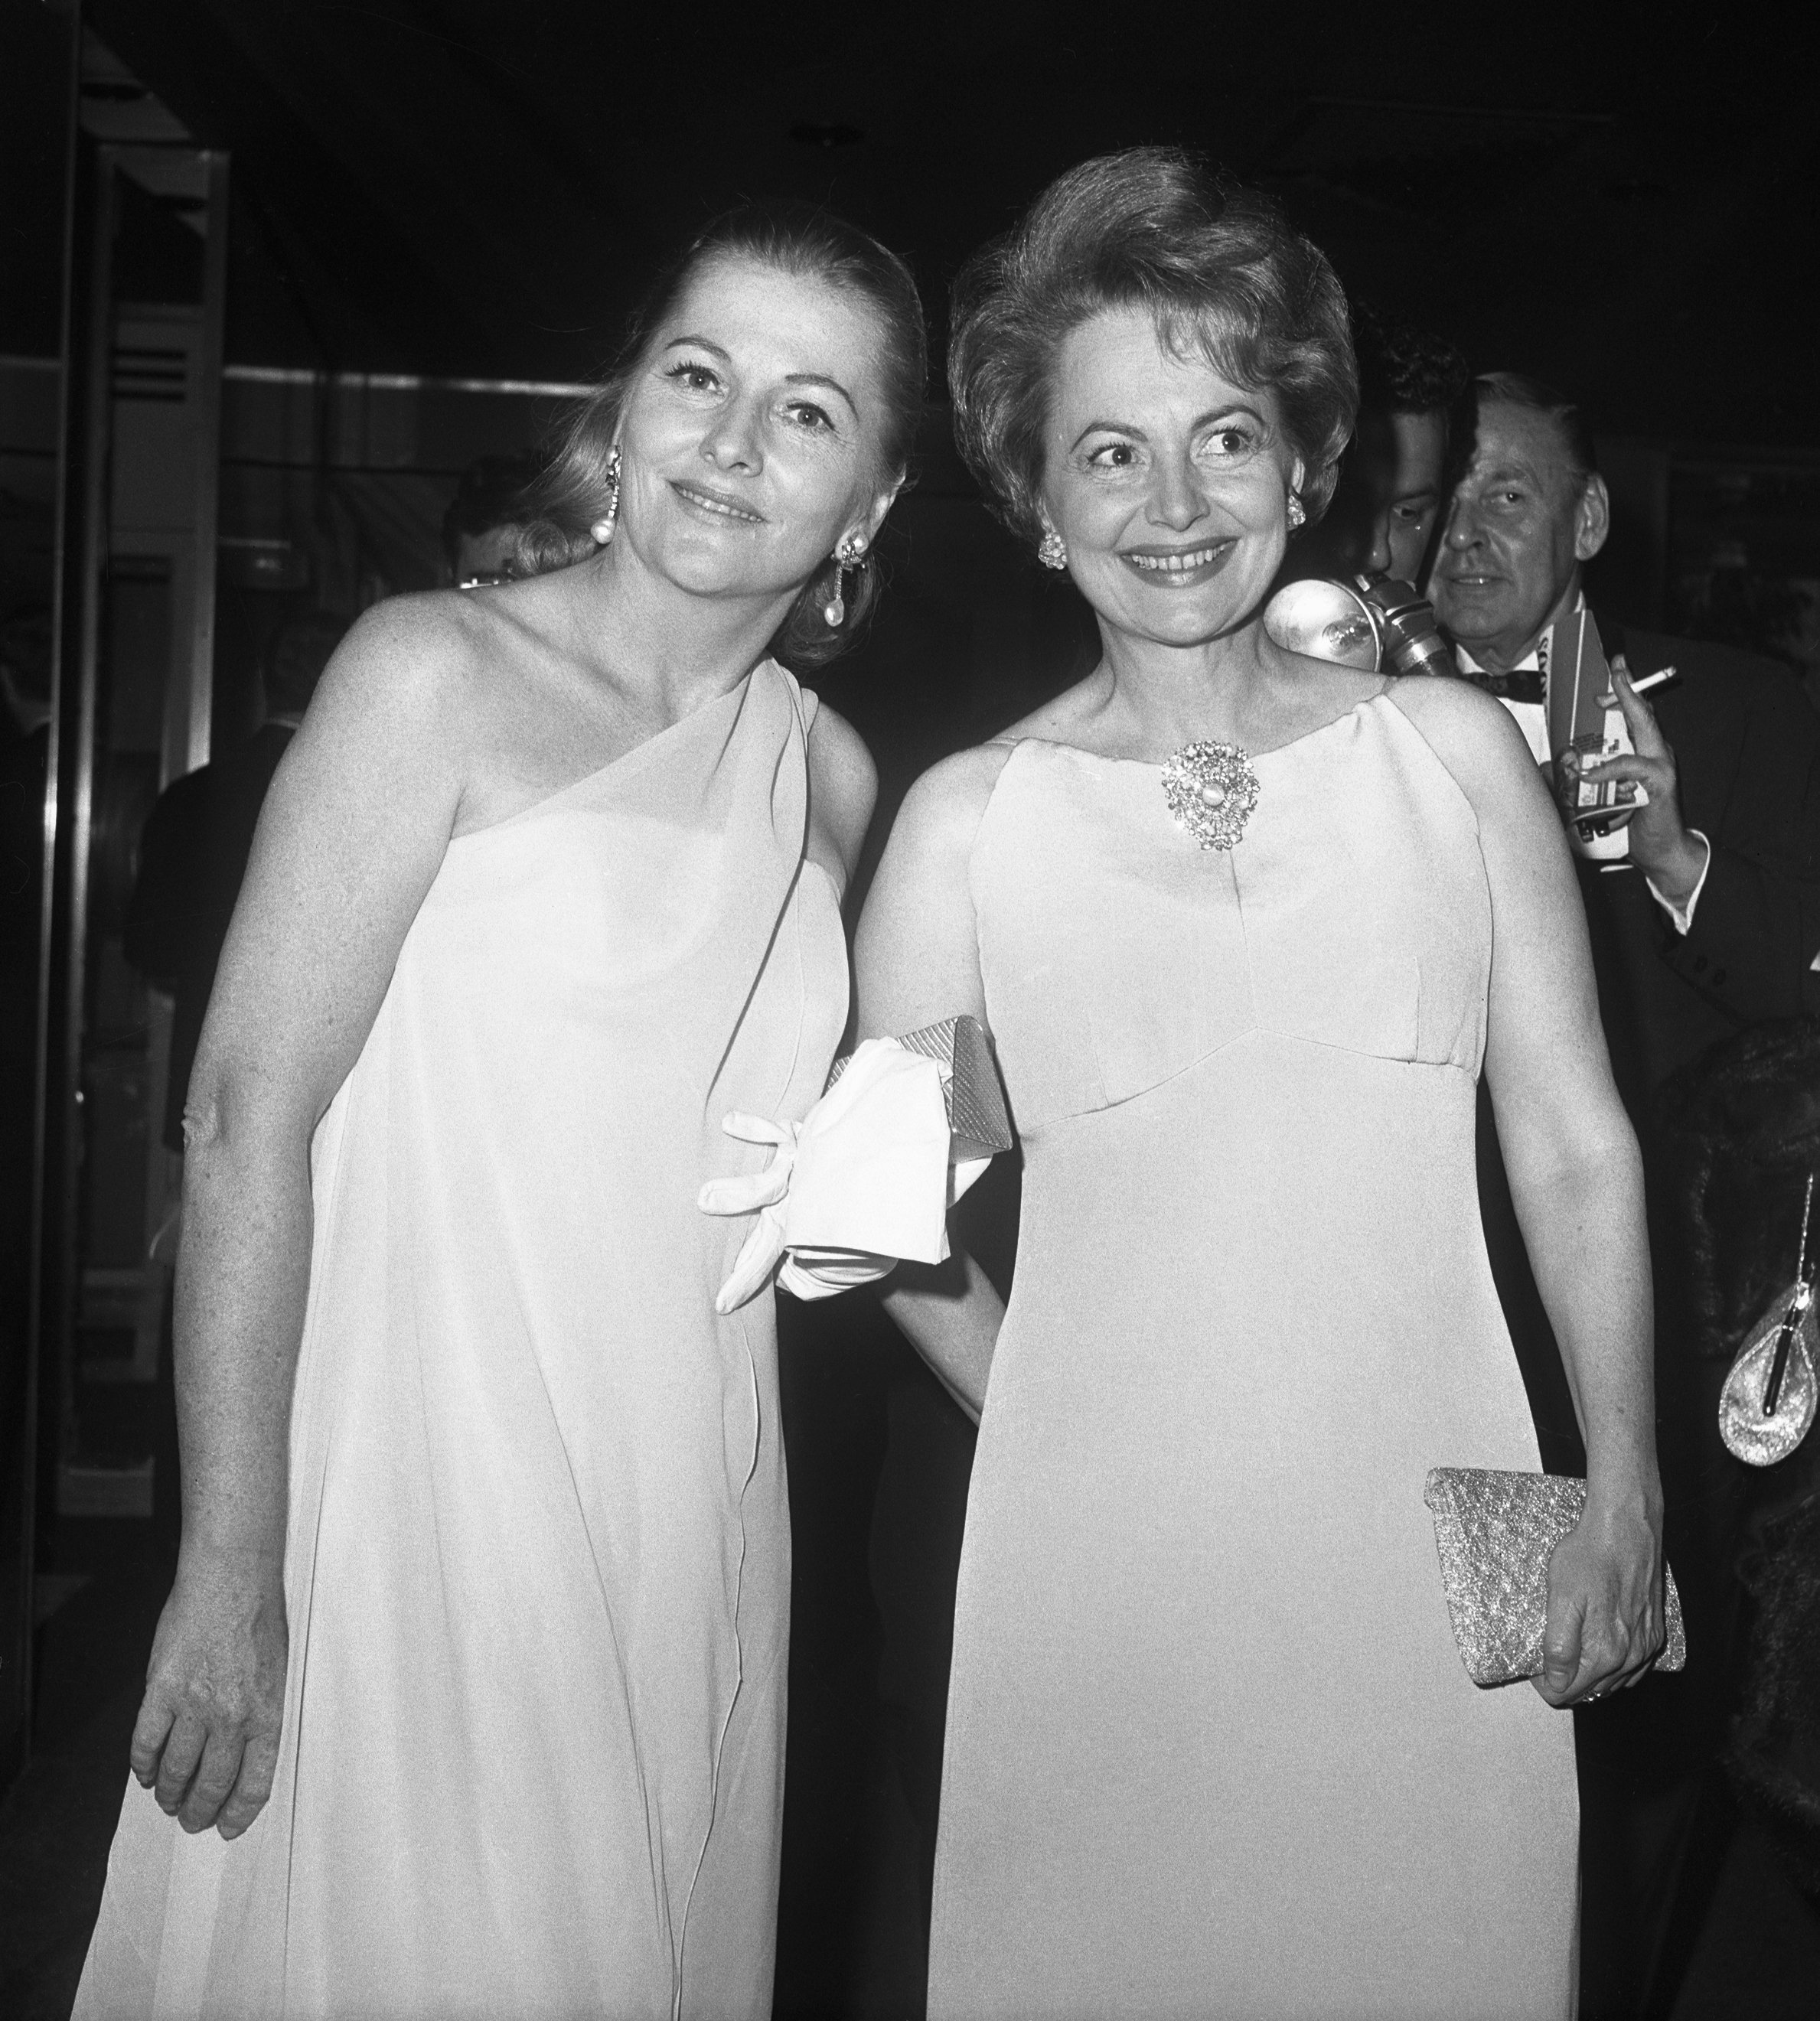 Olivia de Havilland and sister Joan Fontaine during Marlene Dietrich's Opening Party - September 9, 1967 at Rainbow Room in New York City, NY. | Source: Getty Images